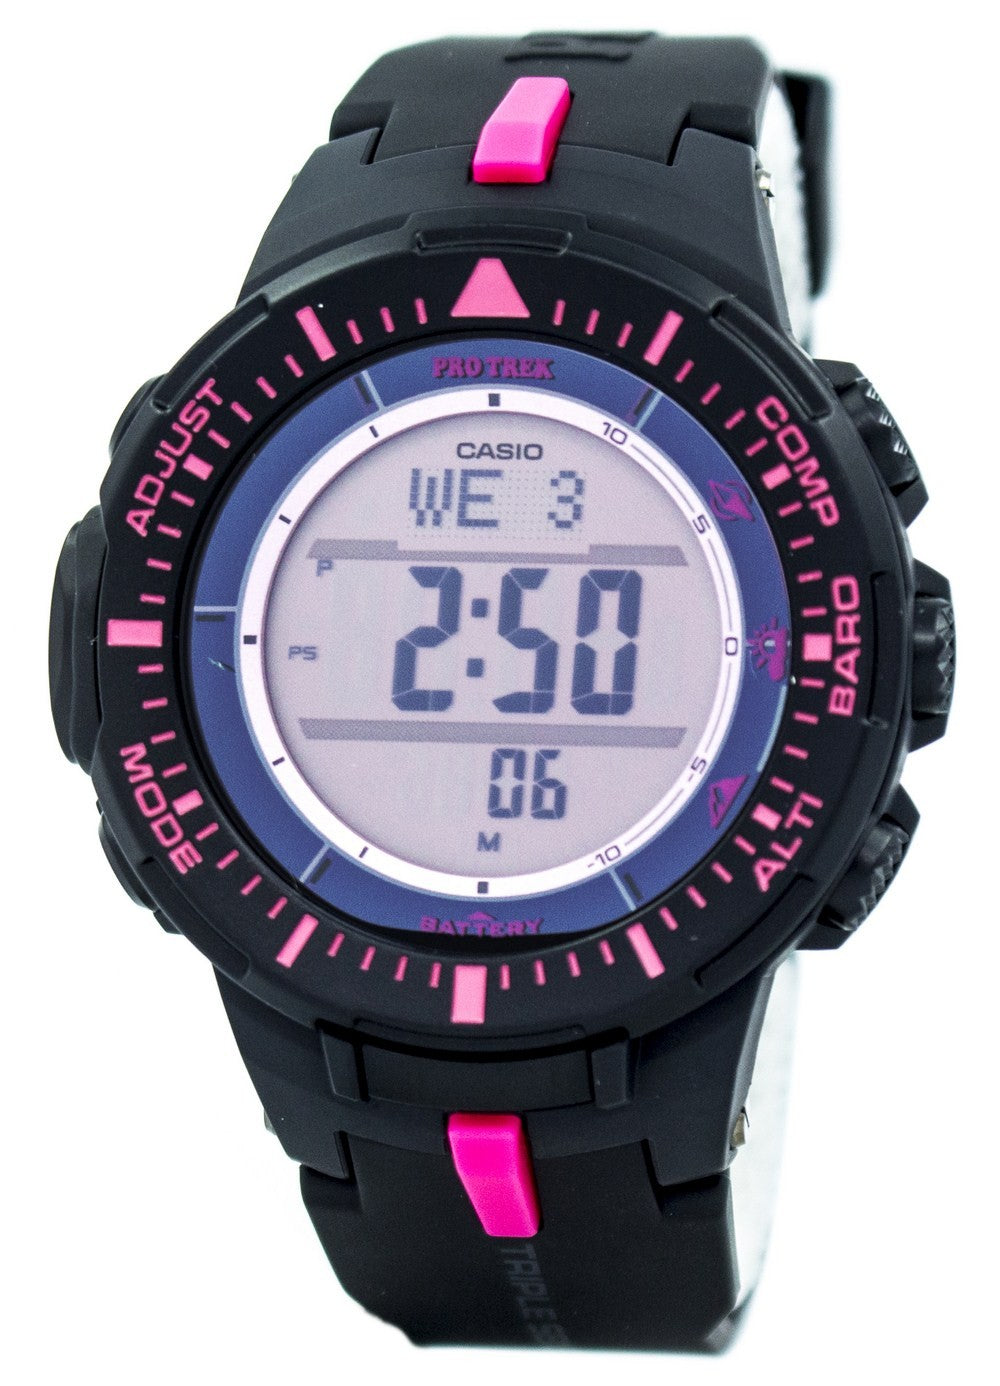 Casio Protrek Triple Sensor Tough Solar PRG-300-1A4 PRG300-1A4 Watch